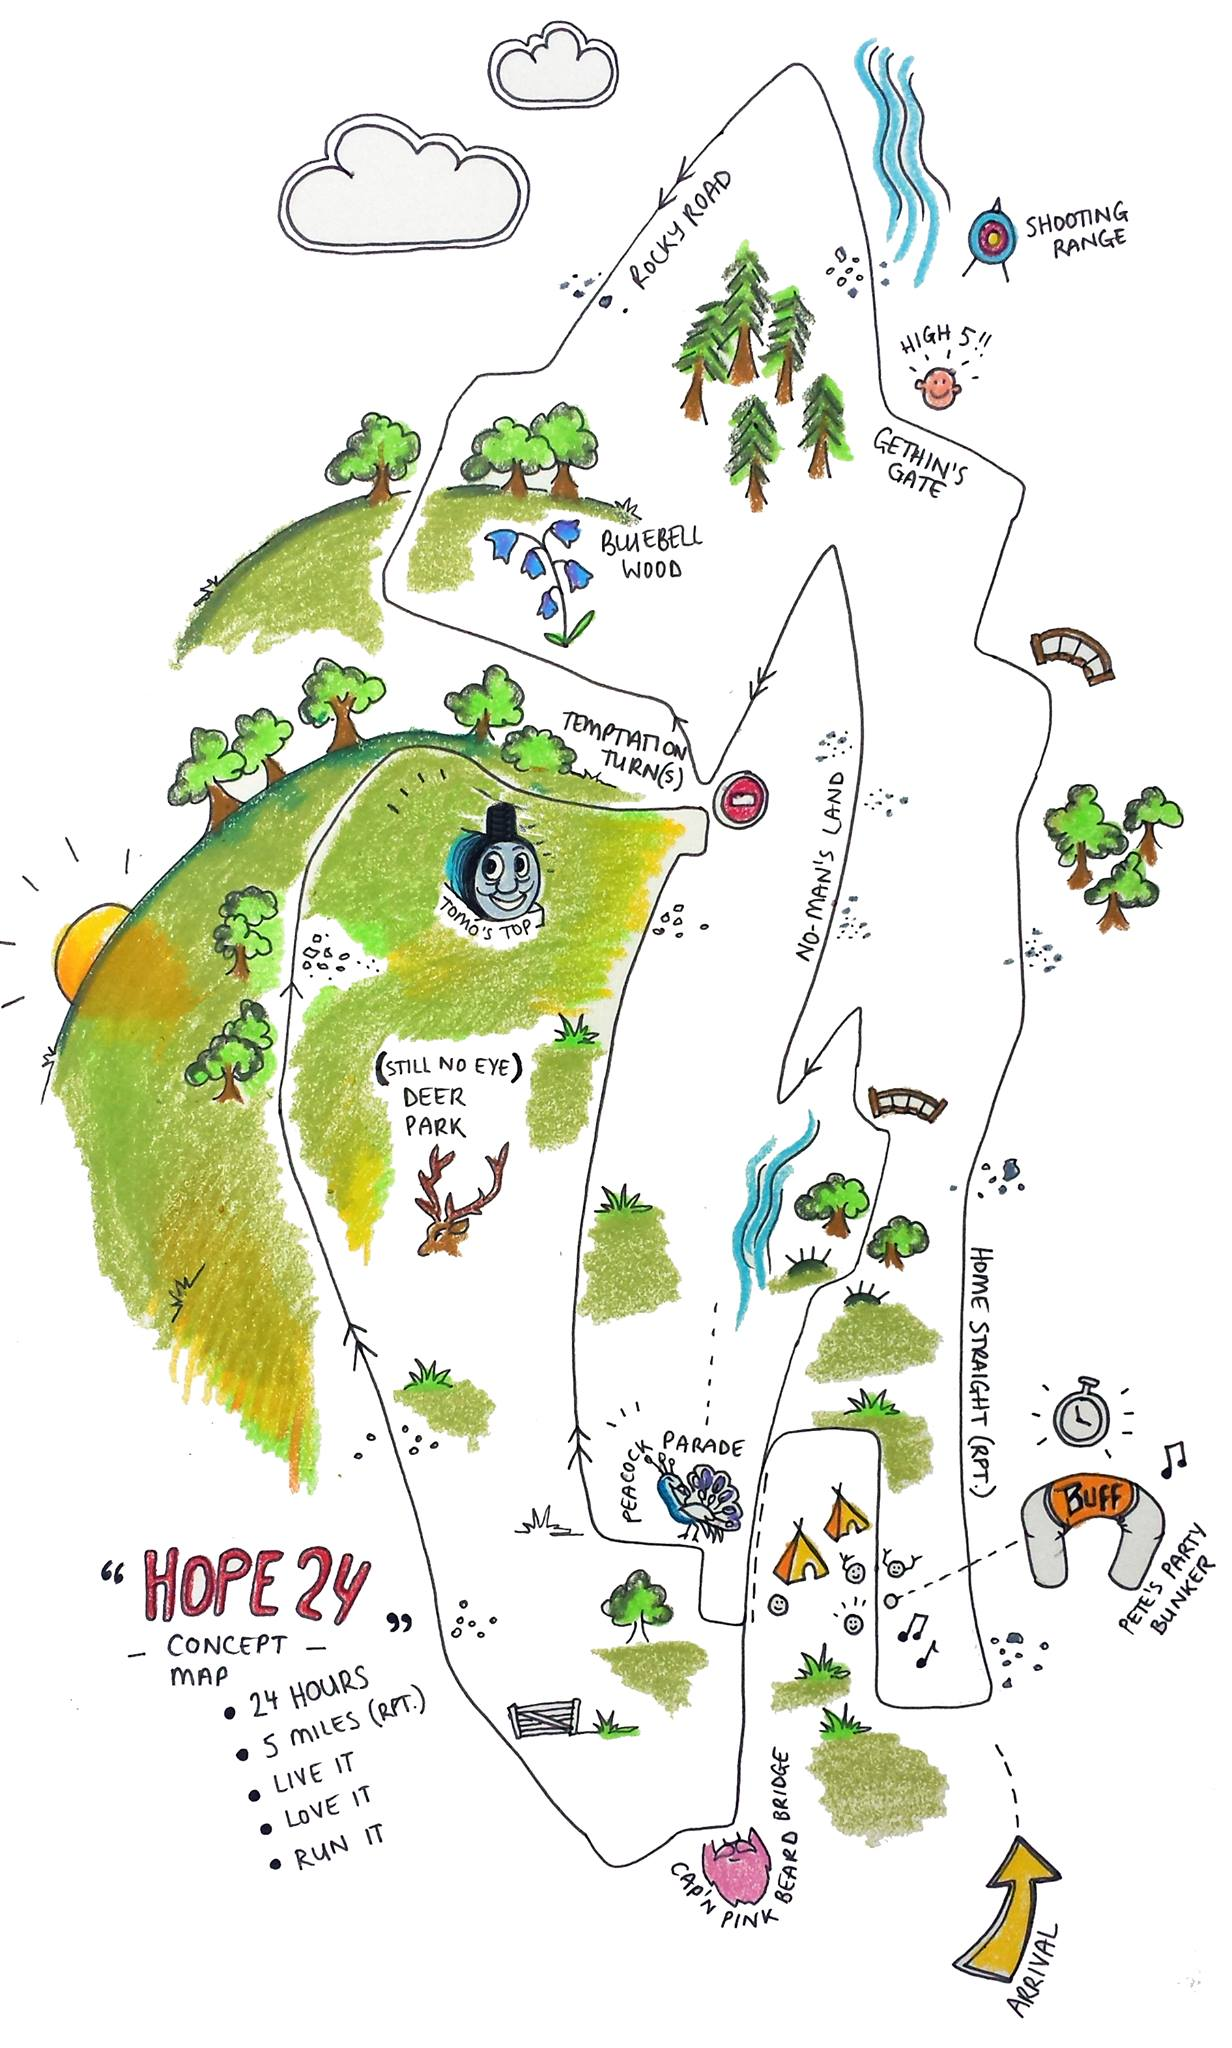 Excellent sketch map of Hope 24 from Matt Bisco